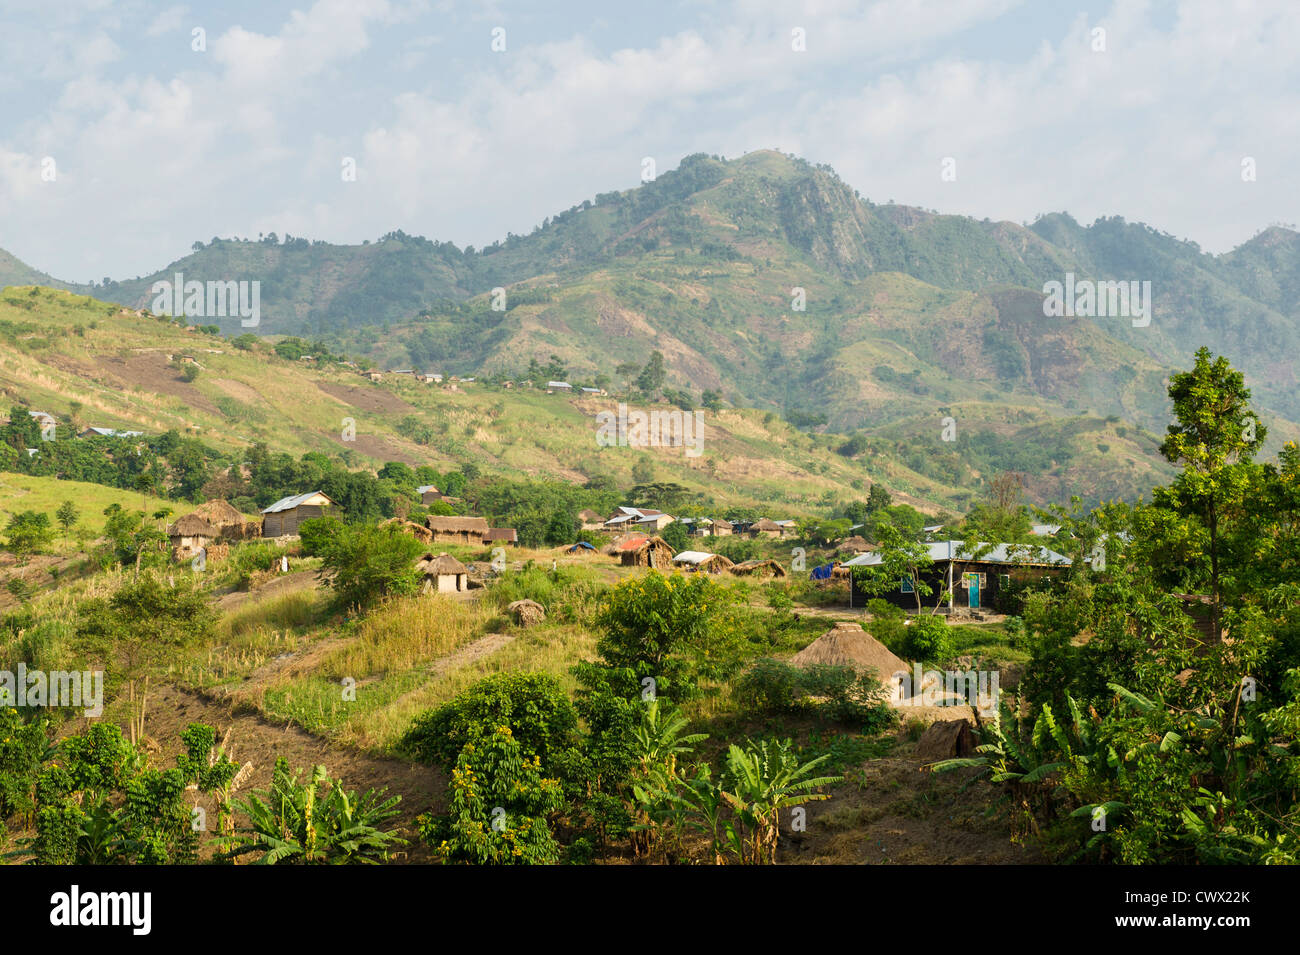 Village near Tonga outside Virunga National Park, DR Congo - Stock Image